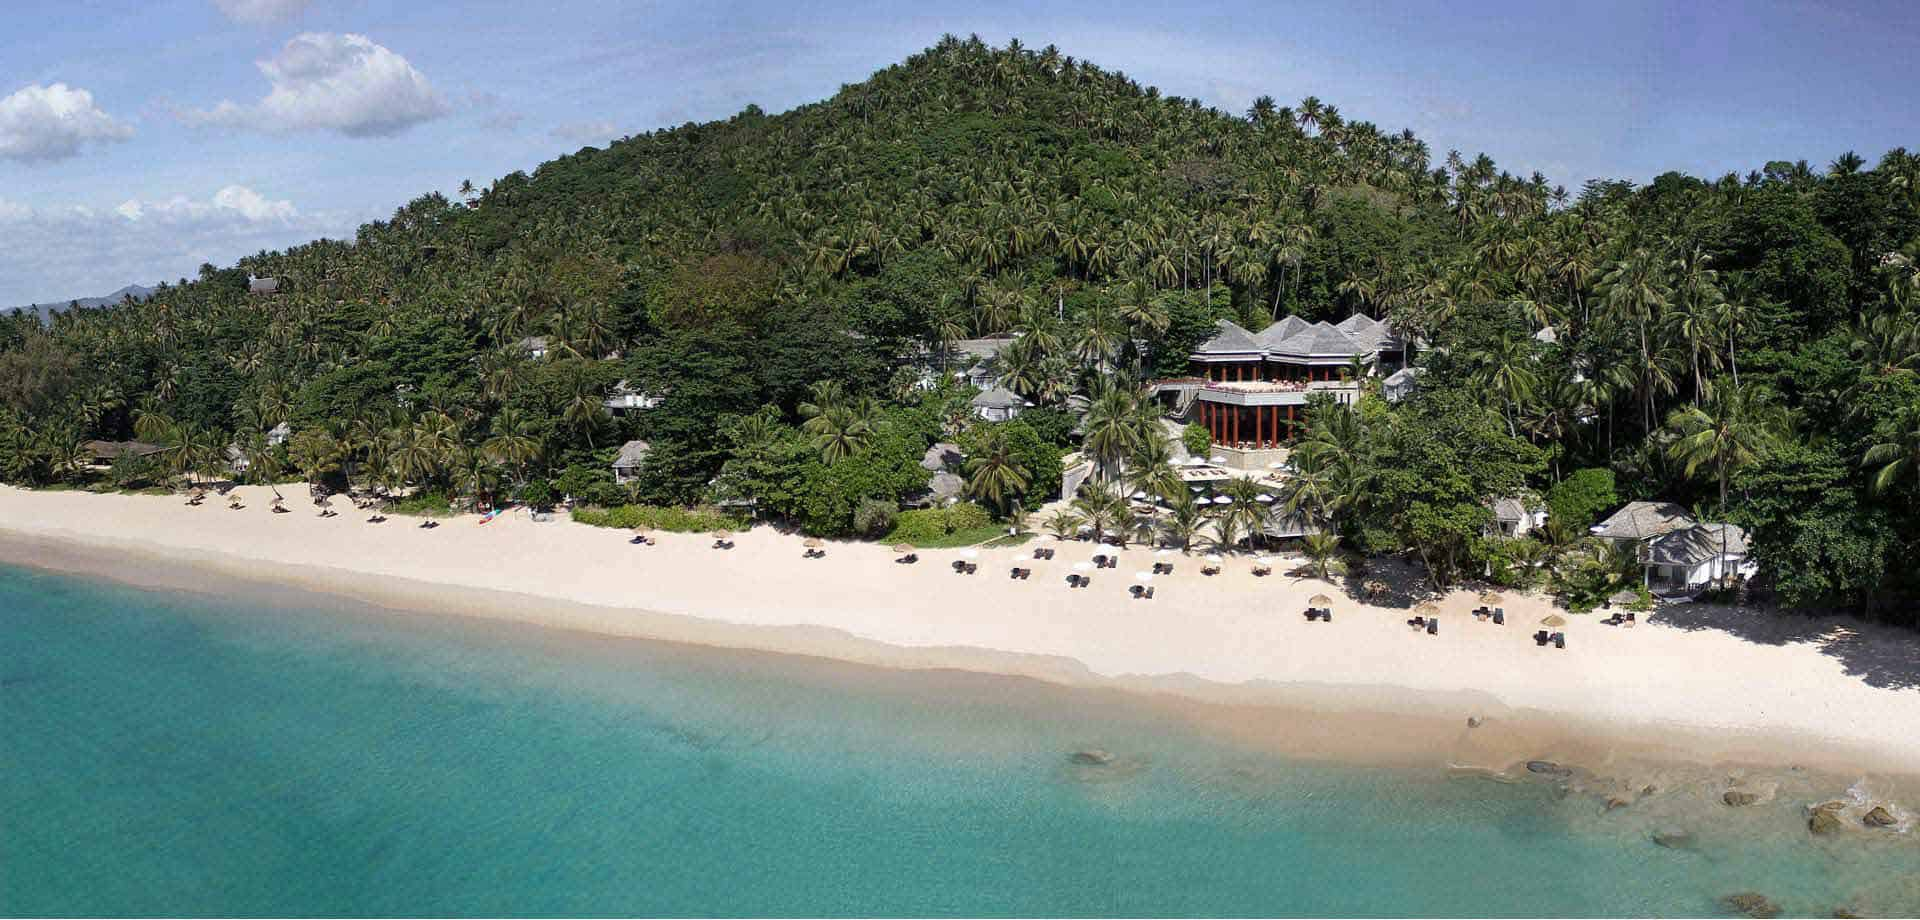 View from above of the beach of Surin Phuket. Clear blue sea, white sand beach and forest clad hill.